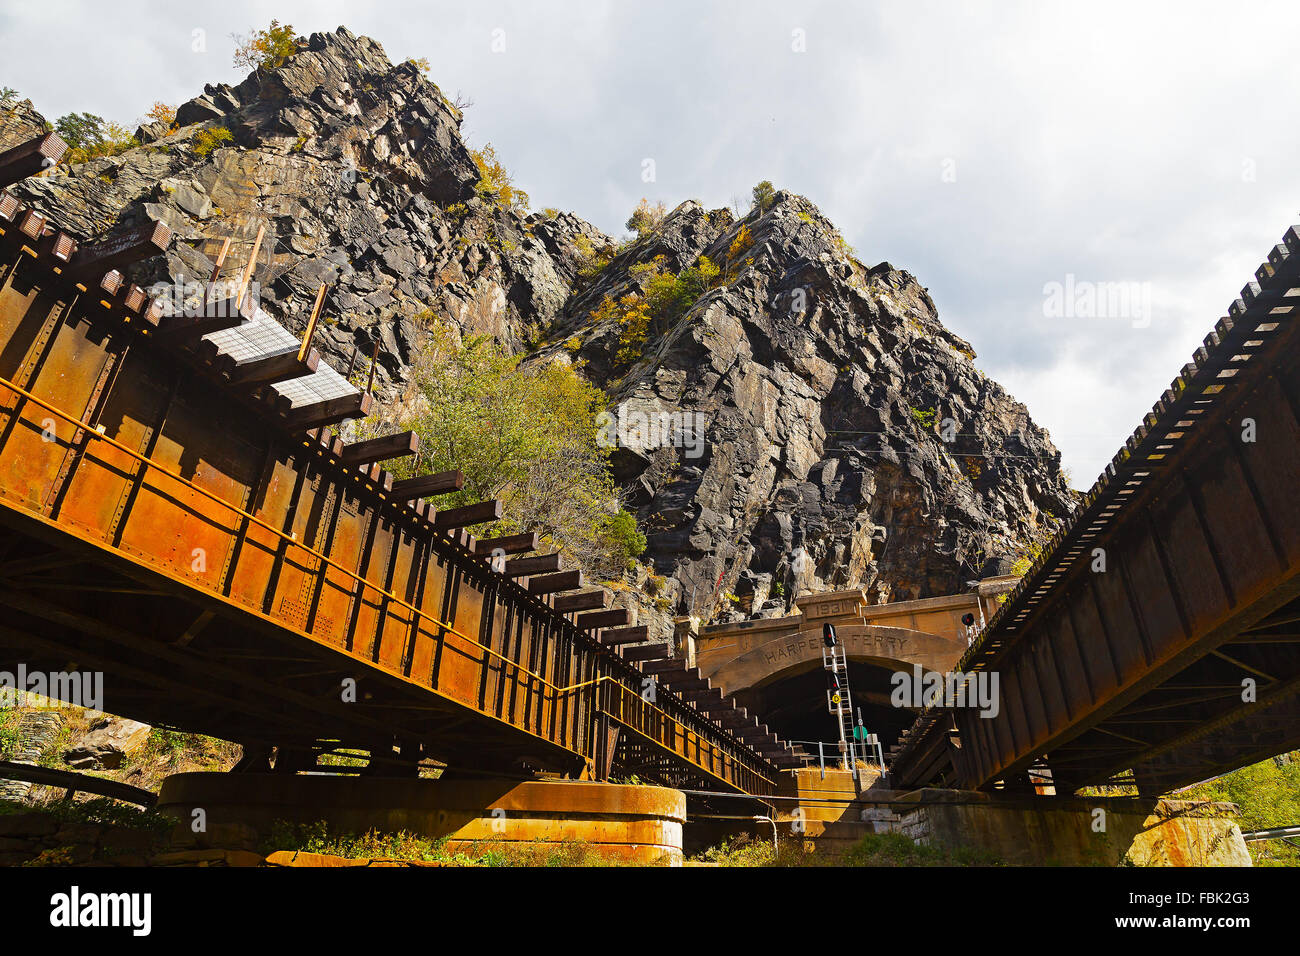 Harpers Ferry train tunnel and bridge across Shenandoah River in West Virginia, USA. Stock Photo